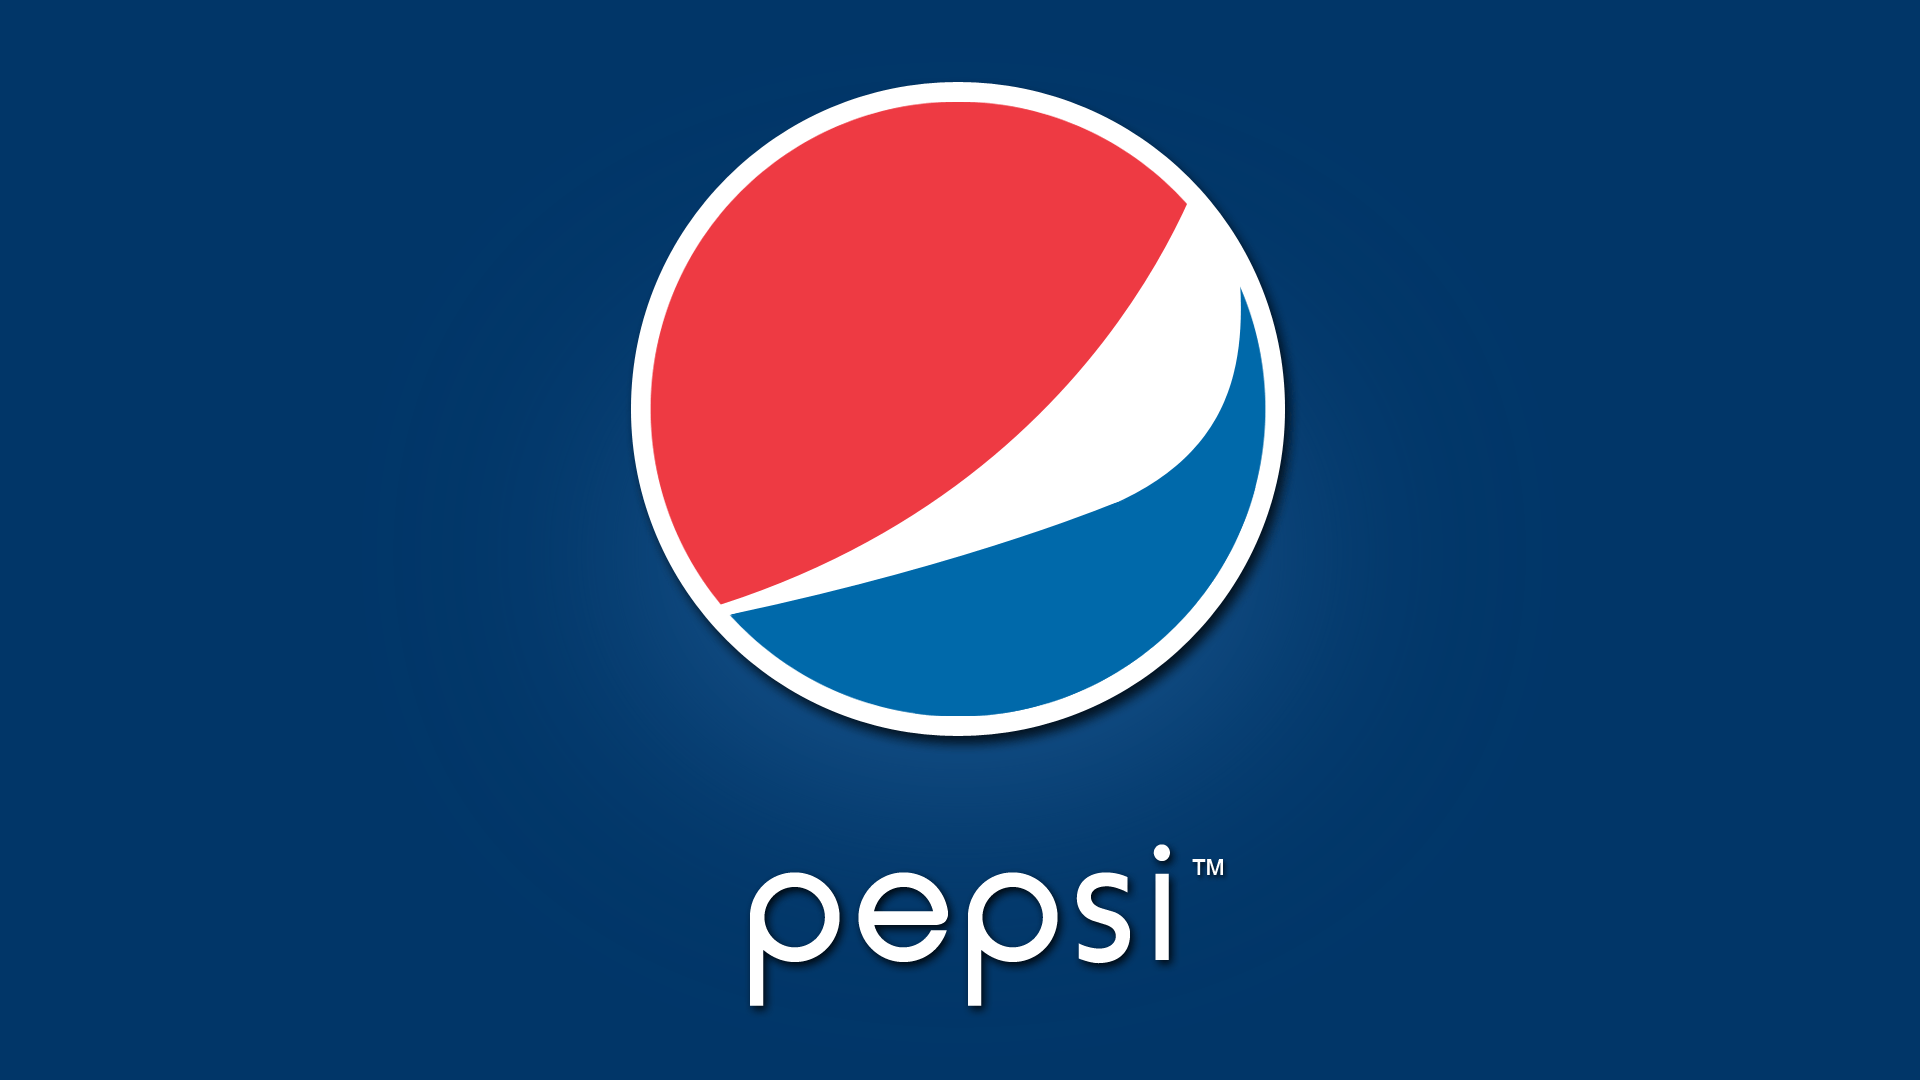 Pepsi Cola Wallpapers - Wallpaper Cave